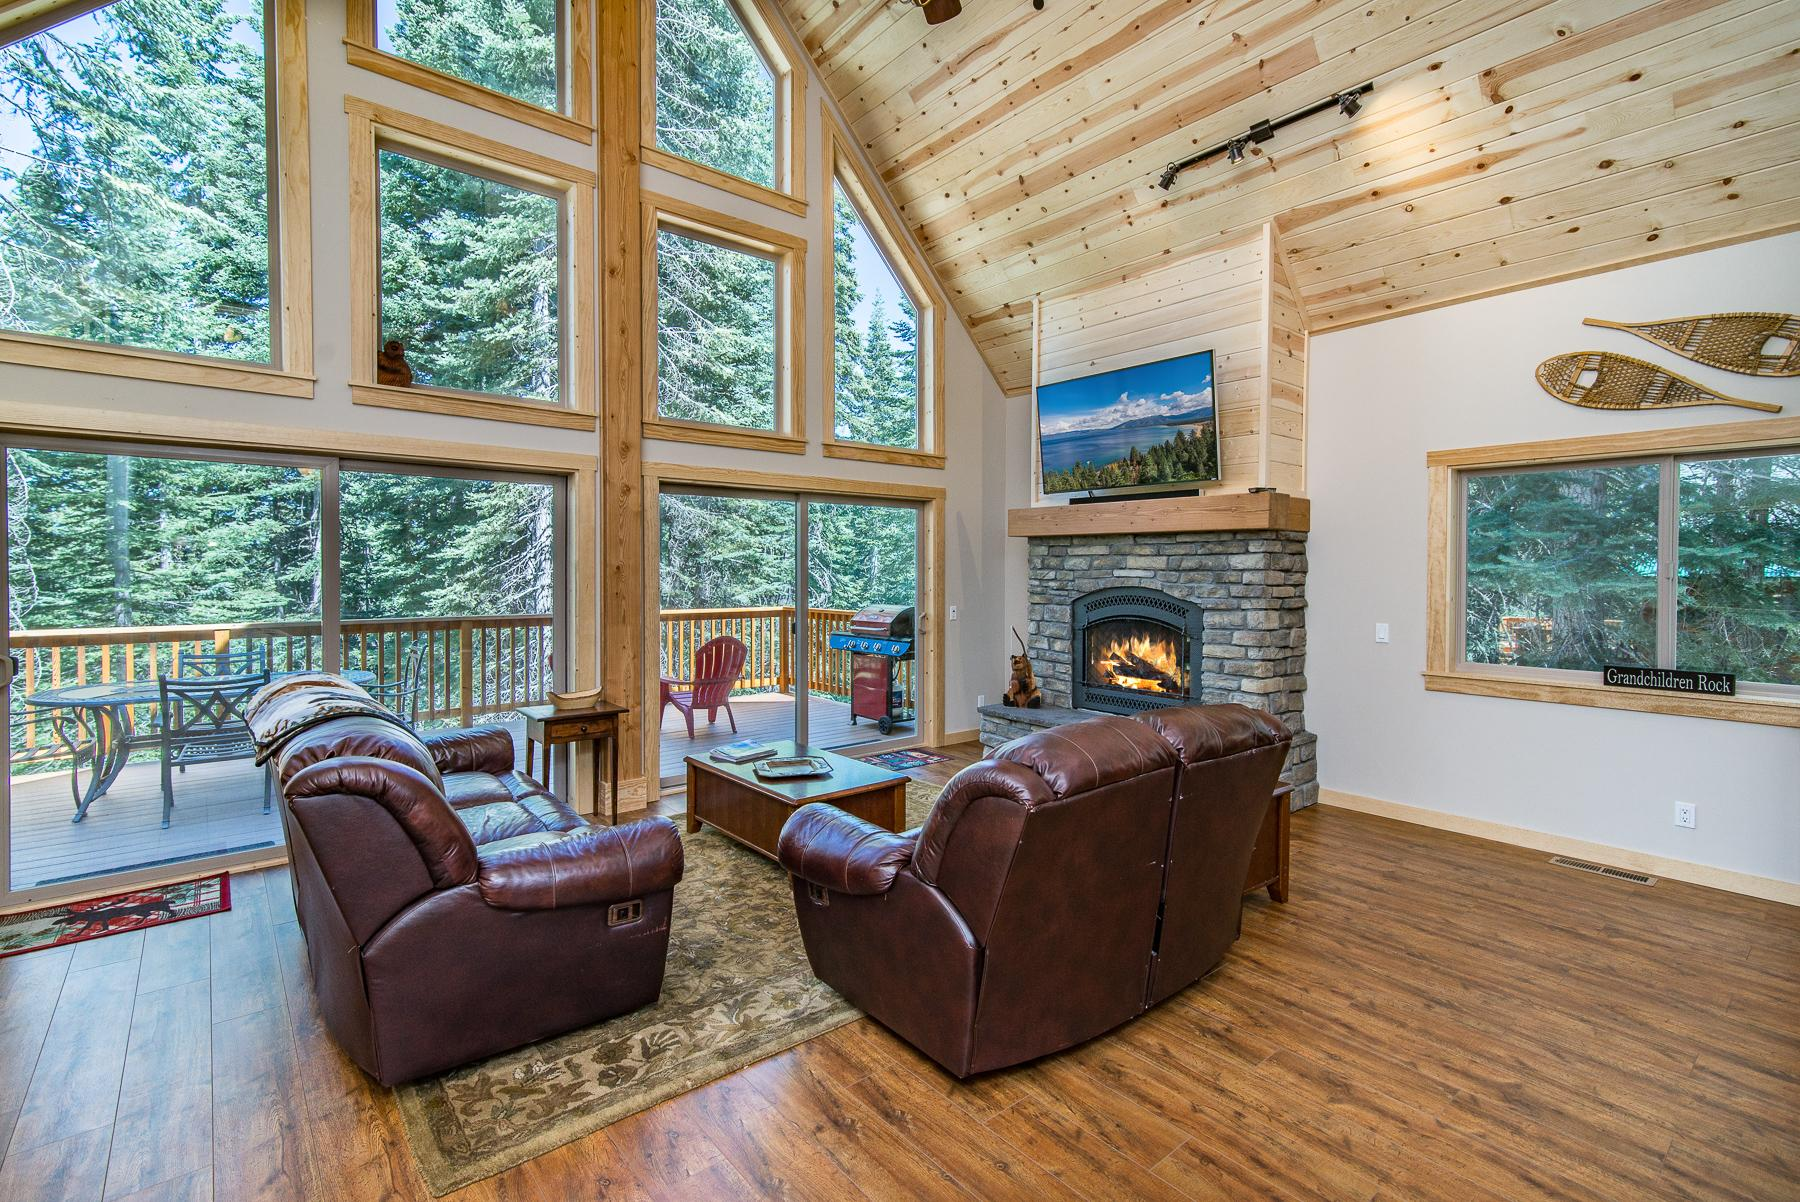 Floor-to-ceiling windows showcase lovely woodland views in the living area, where a gas fireplace with stone surround provides a warm vibe.